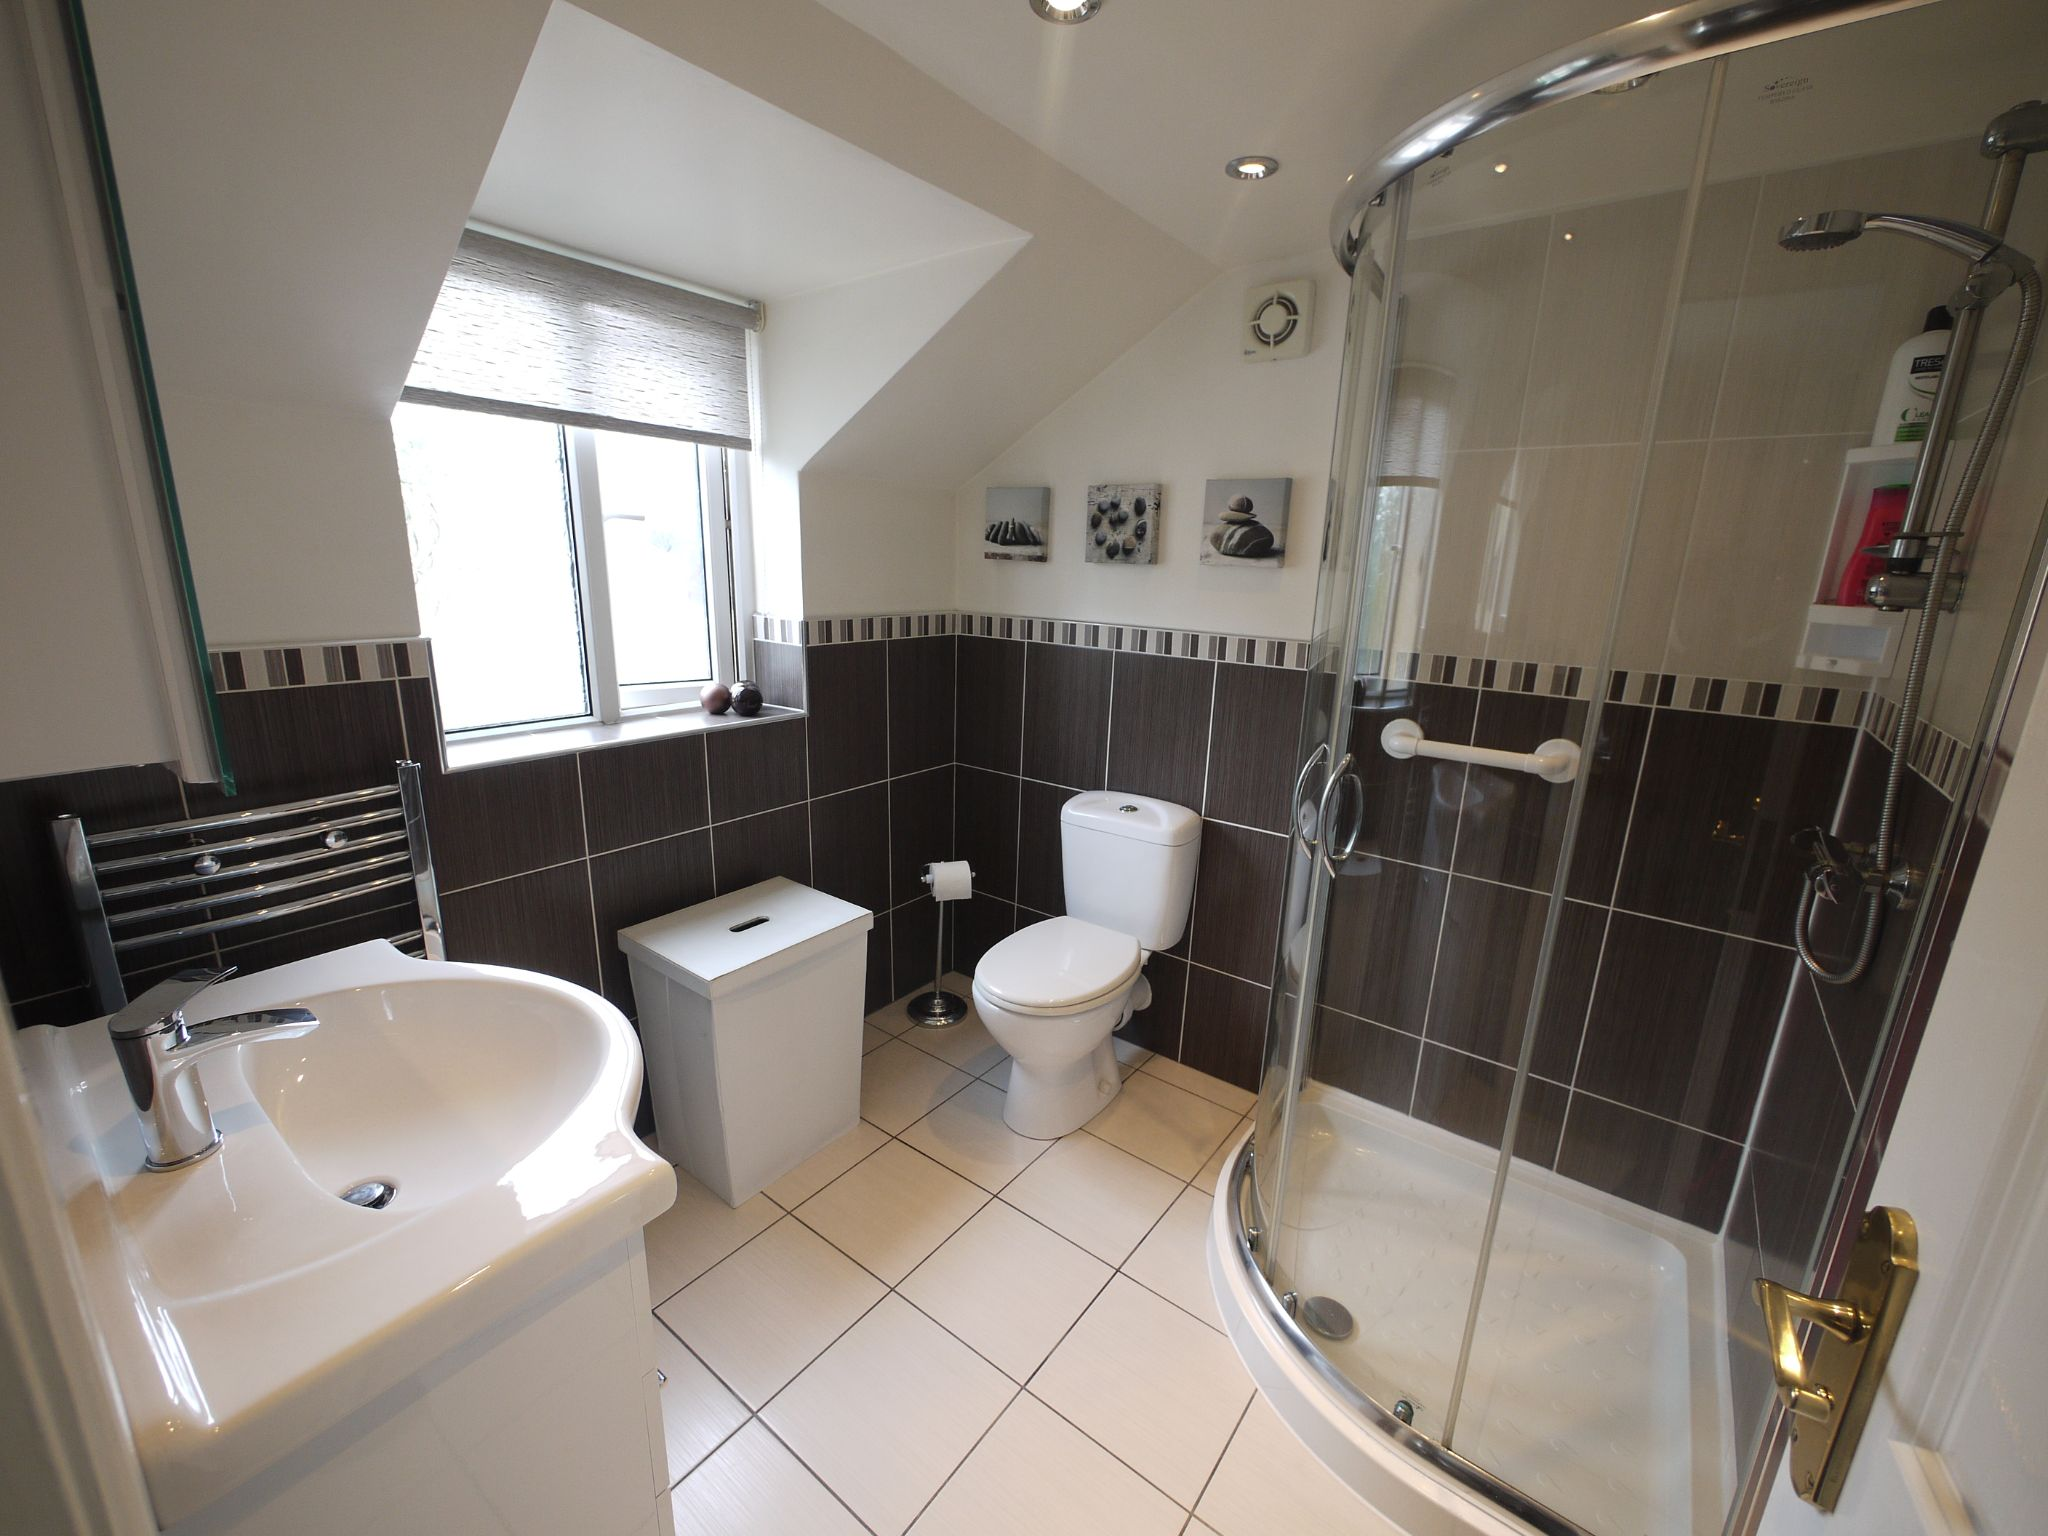 3 bedroom semi-detached house SSTC in Brighouse - Ensuite Shower Room.